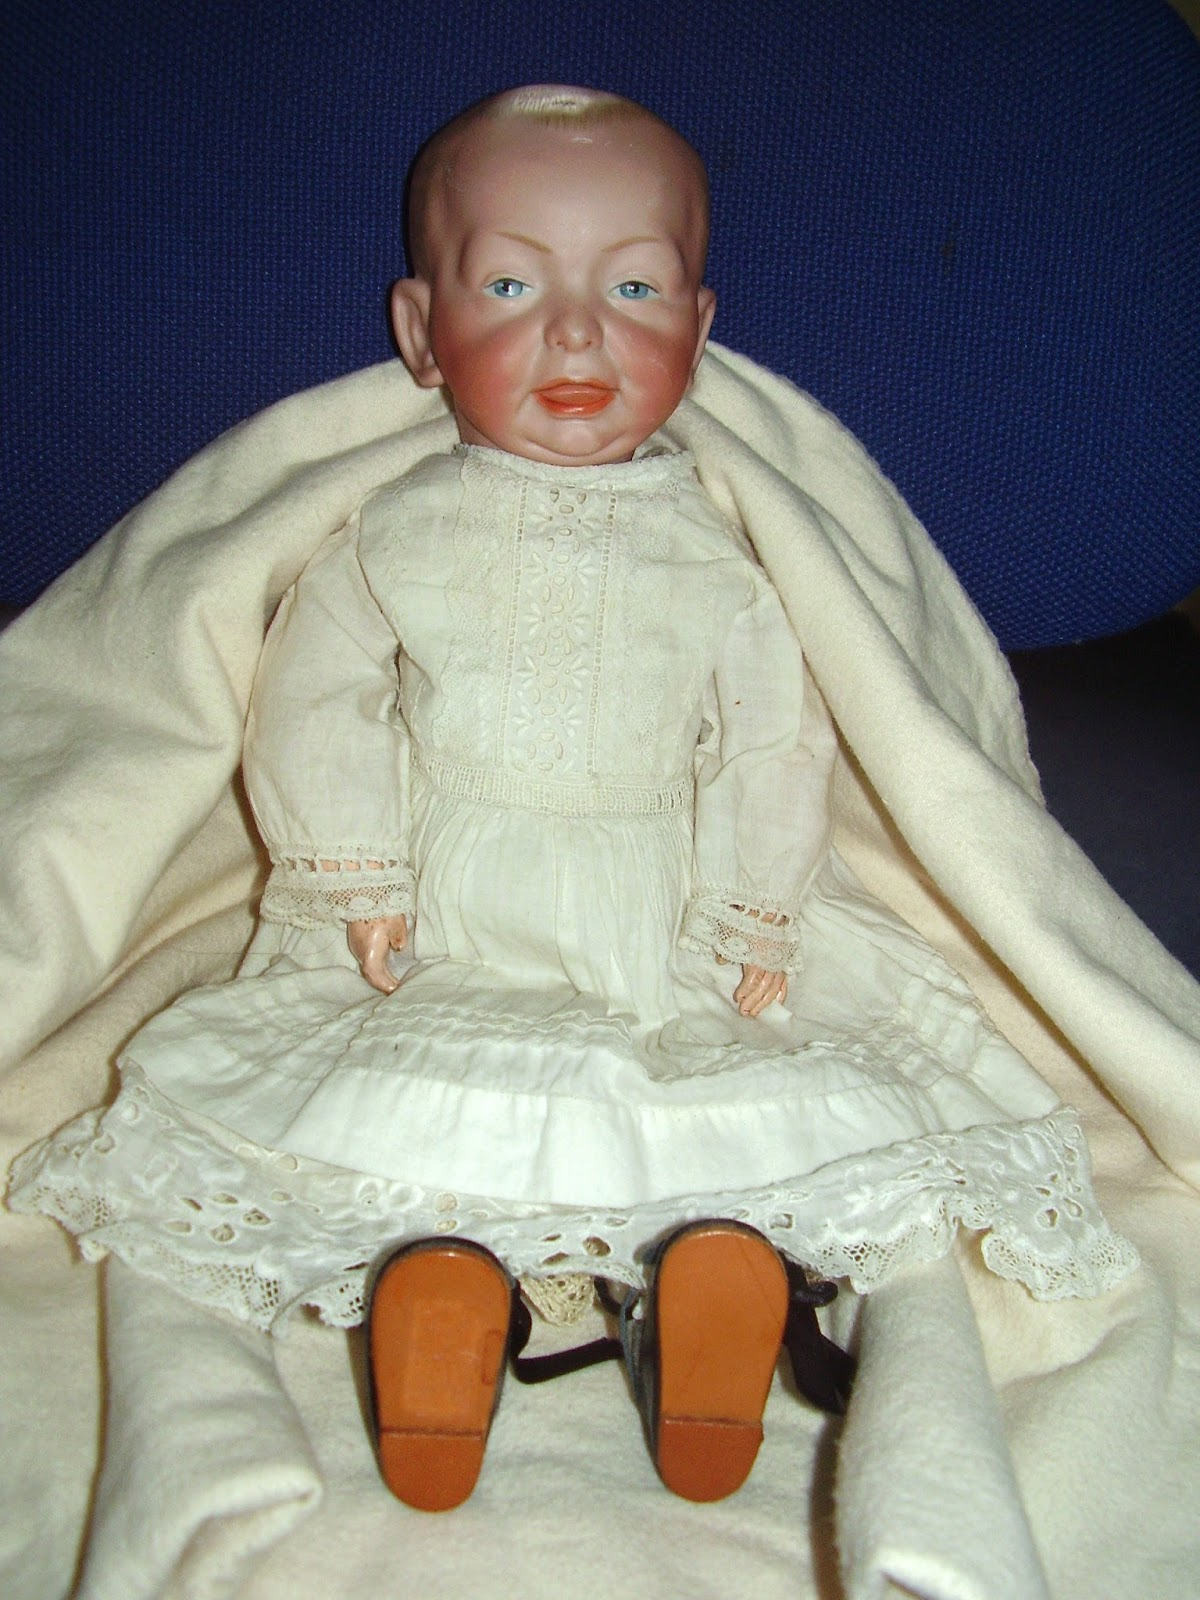 Baby Model München Dayswiththedead Uk Material Culture Family History